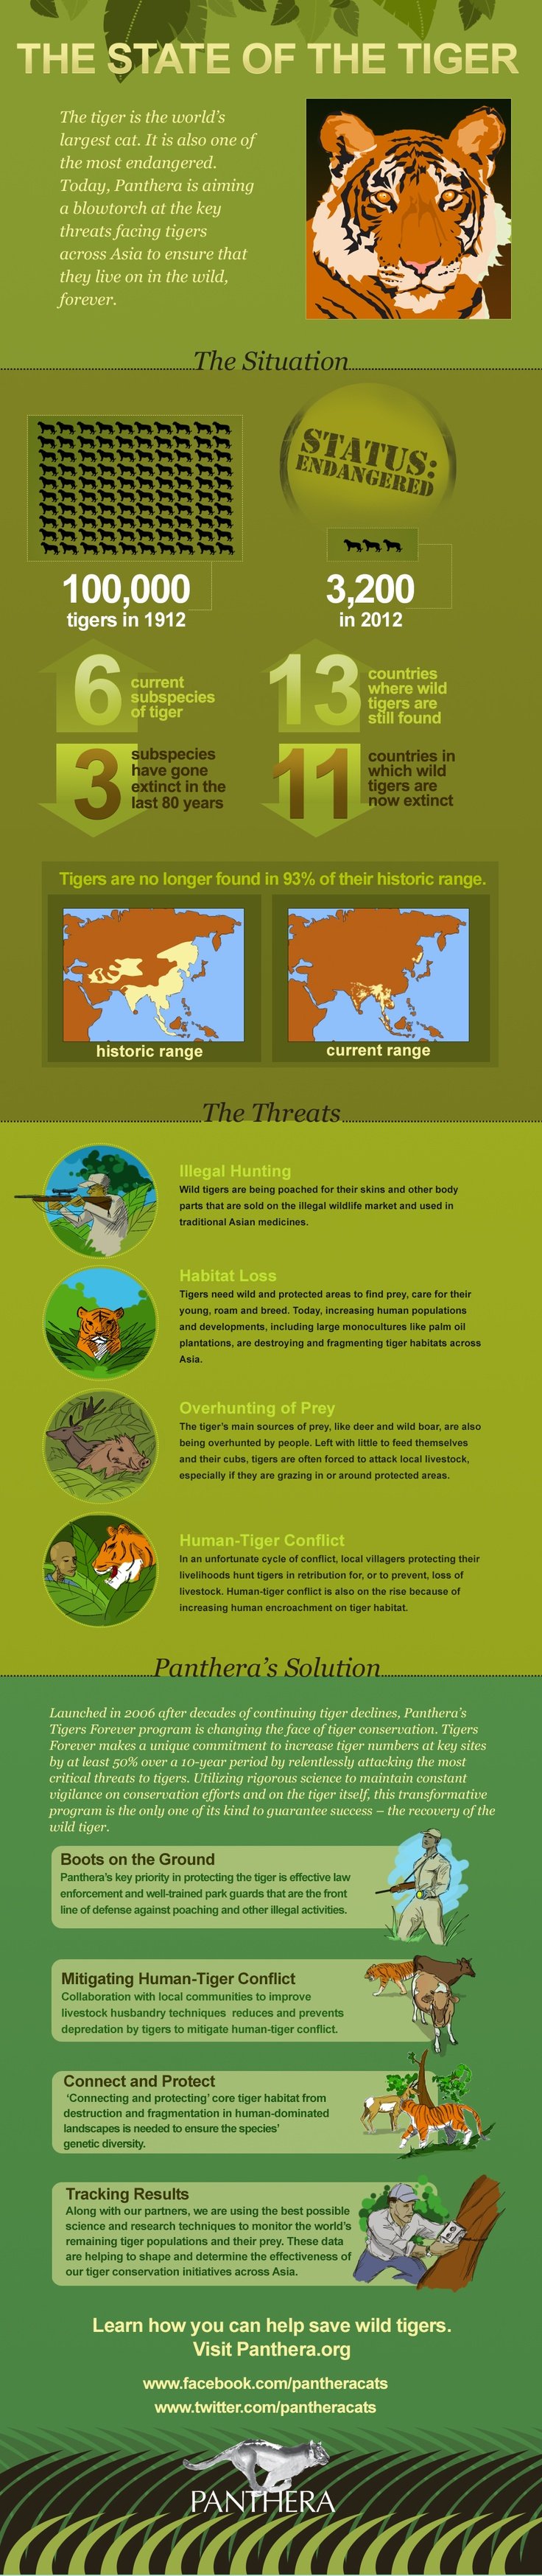 Pathera's info graphic about the state of Tigers in the wild.